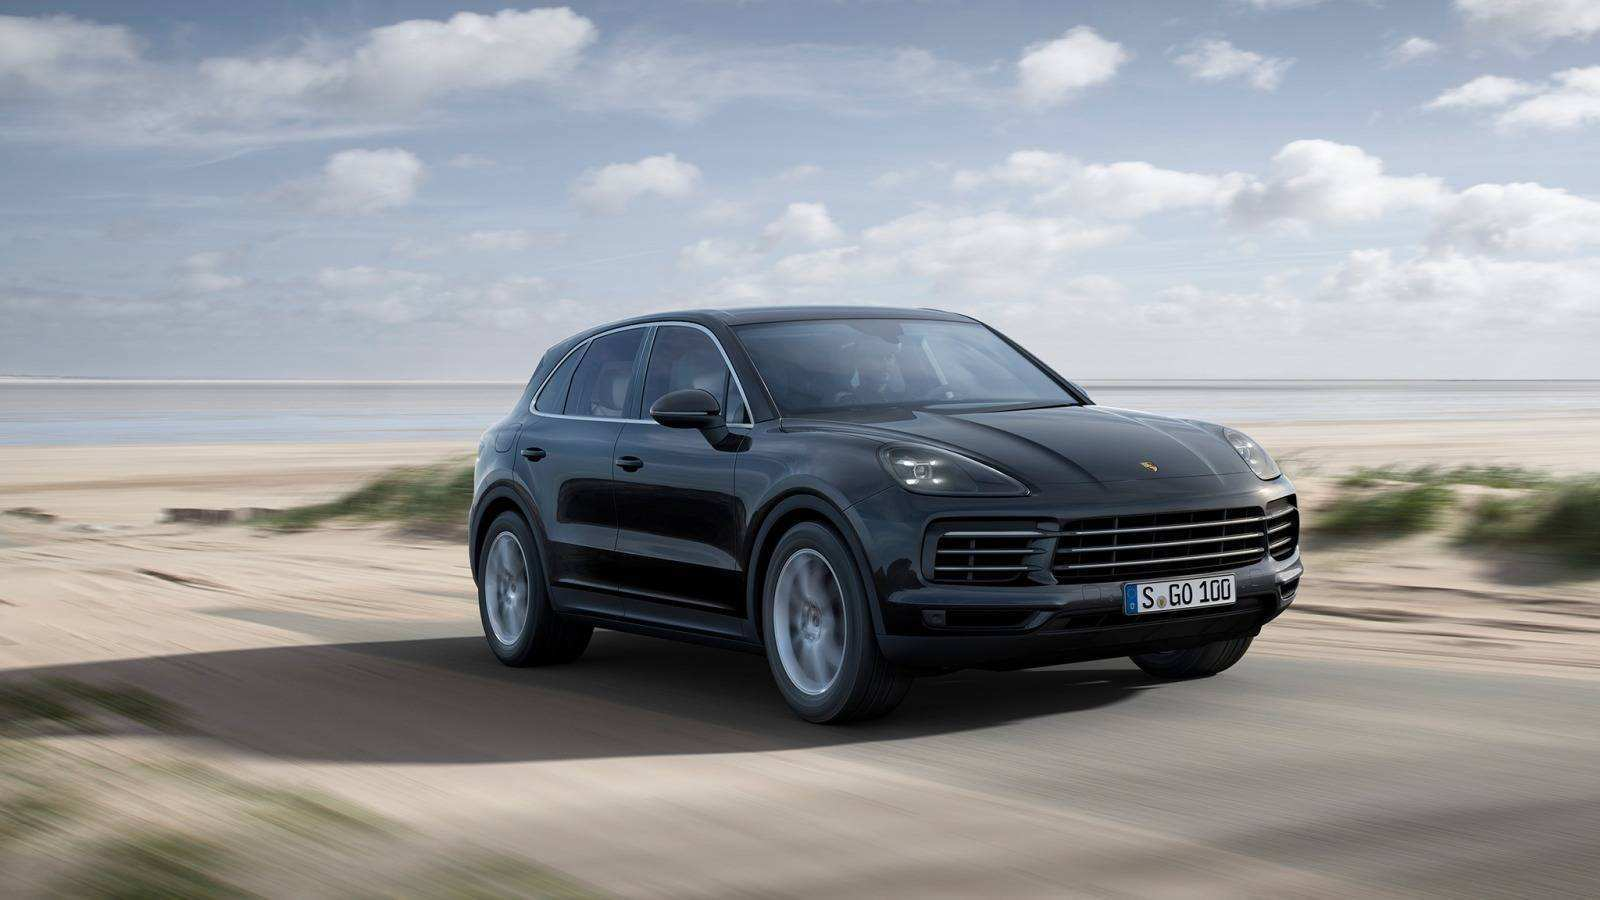 65 The 2019 Porsche Cayenne Speed Test with 2019 Porsche Cayenne